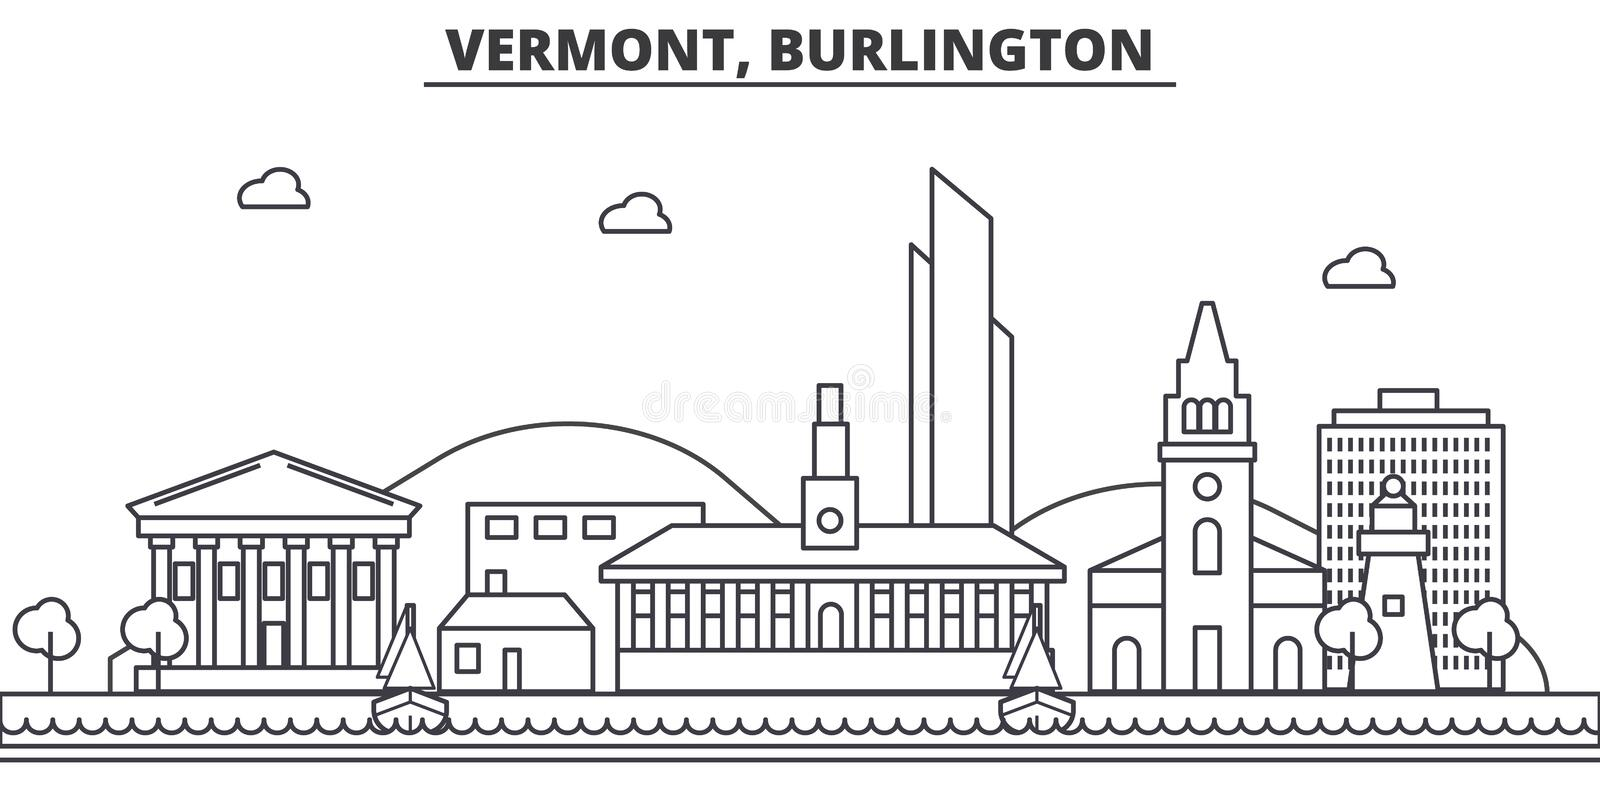 Vermont, Burlington architecture line skyline illustration. Linear vector cityscape with famous landmarks, city sights stock illustration